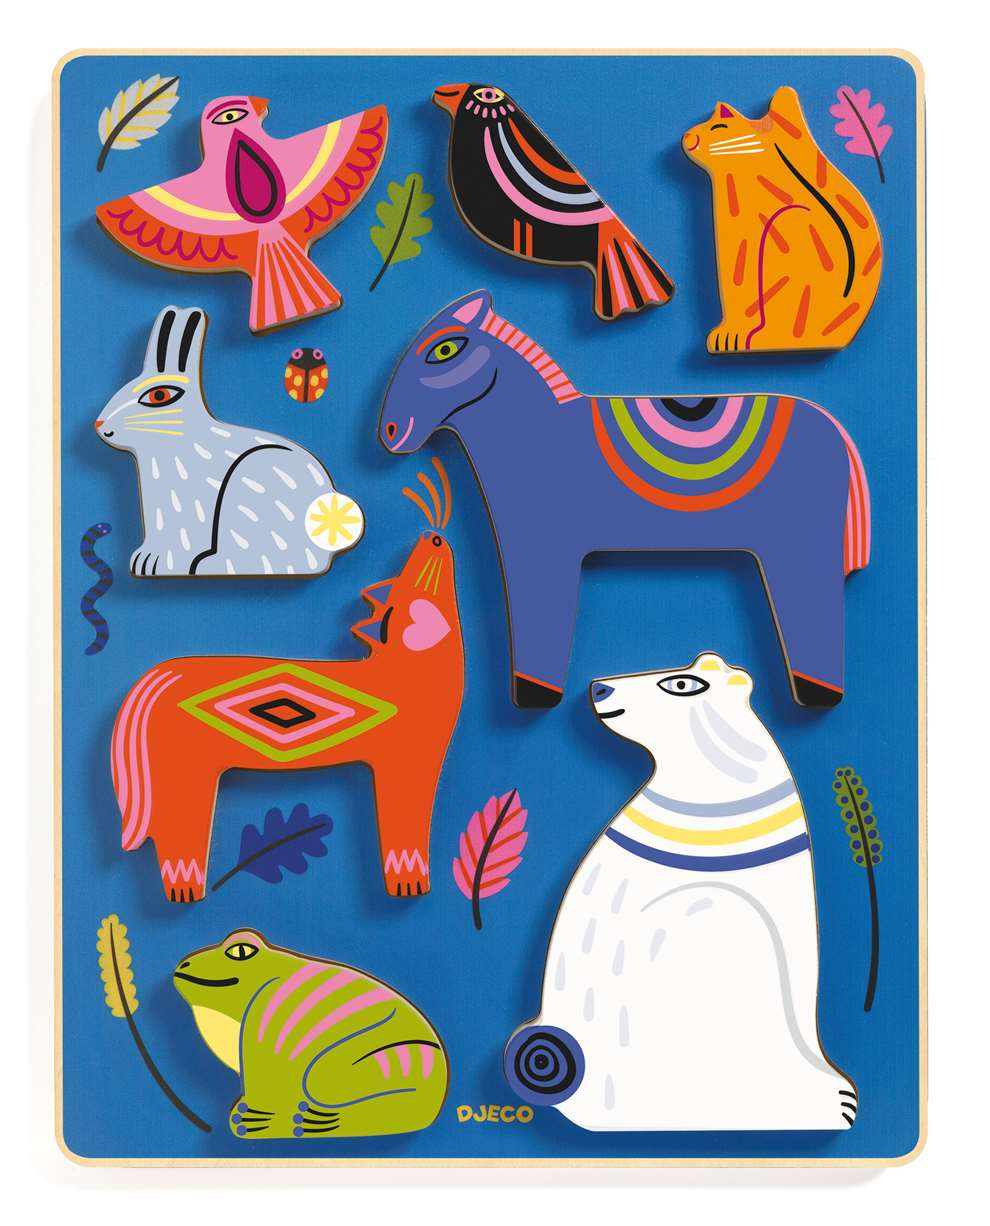 Margaux Carpentier, Margaux's distinctive work is inspired by encounters with colourful earthly, and imaginative creatures and folk tales from around the world. Wooden Toys for Deco Toys.